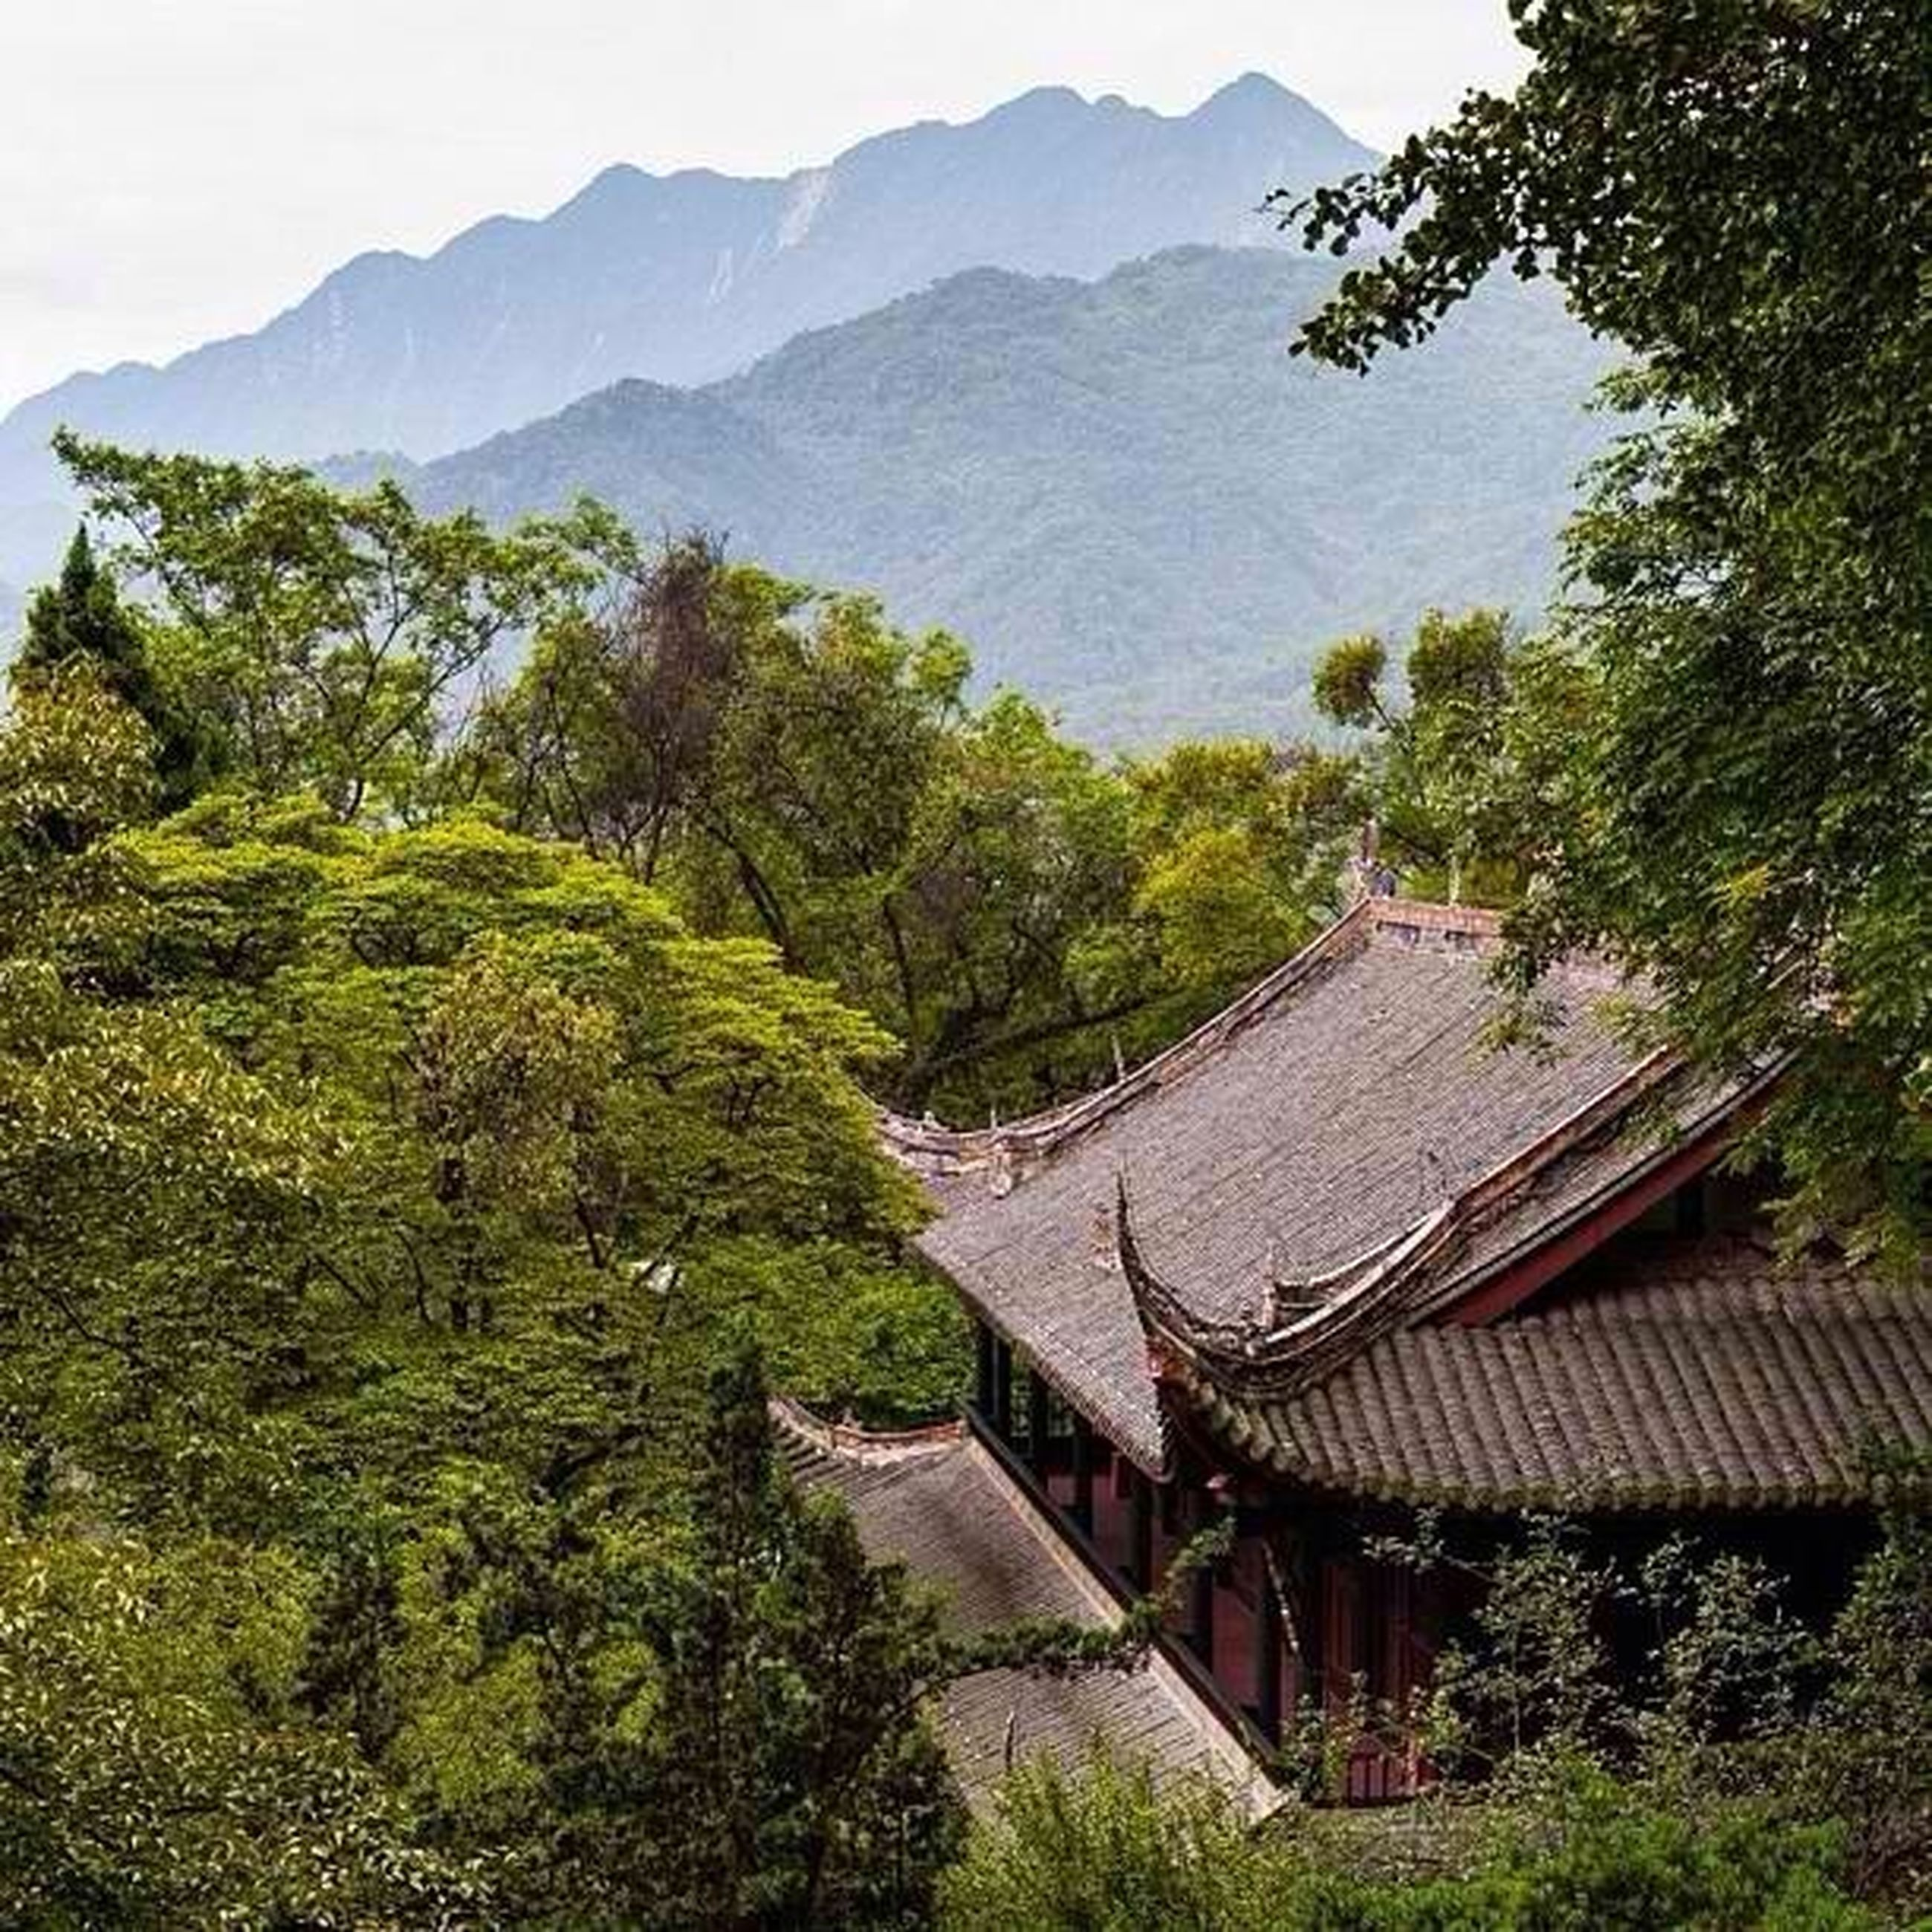 mountain, tree, house, built structure, tranquility, tranquil scene, scenics, landscape, architecture, building exterior, mountain range, nature, green color, roof, beauty in nature, high angle view, growth, hill, non-urban scene, sky